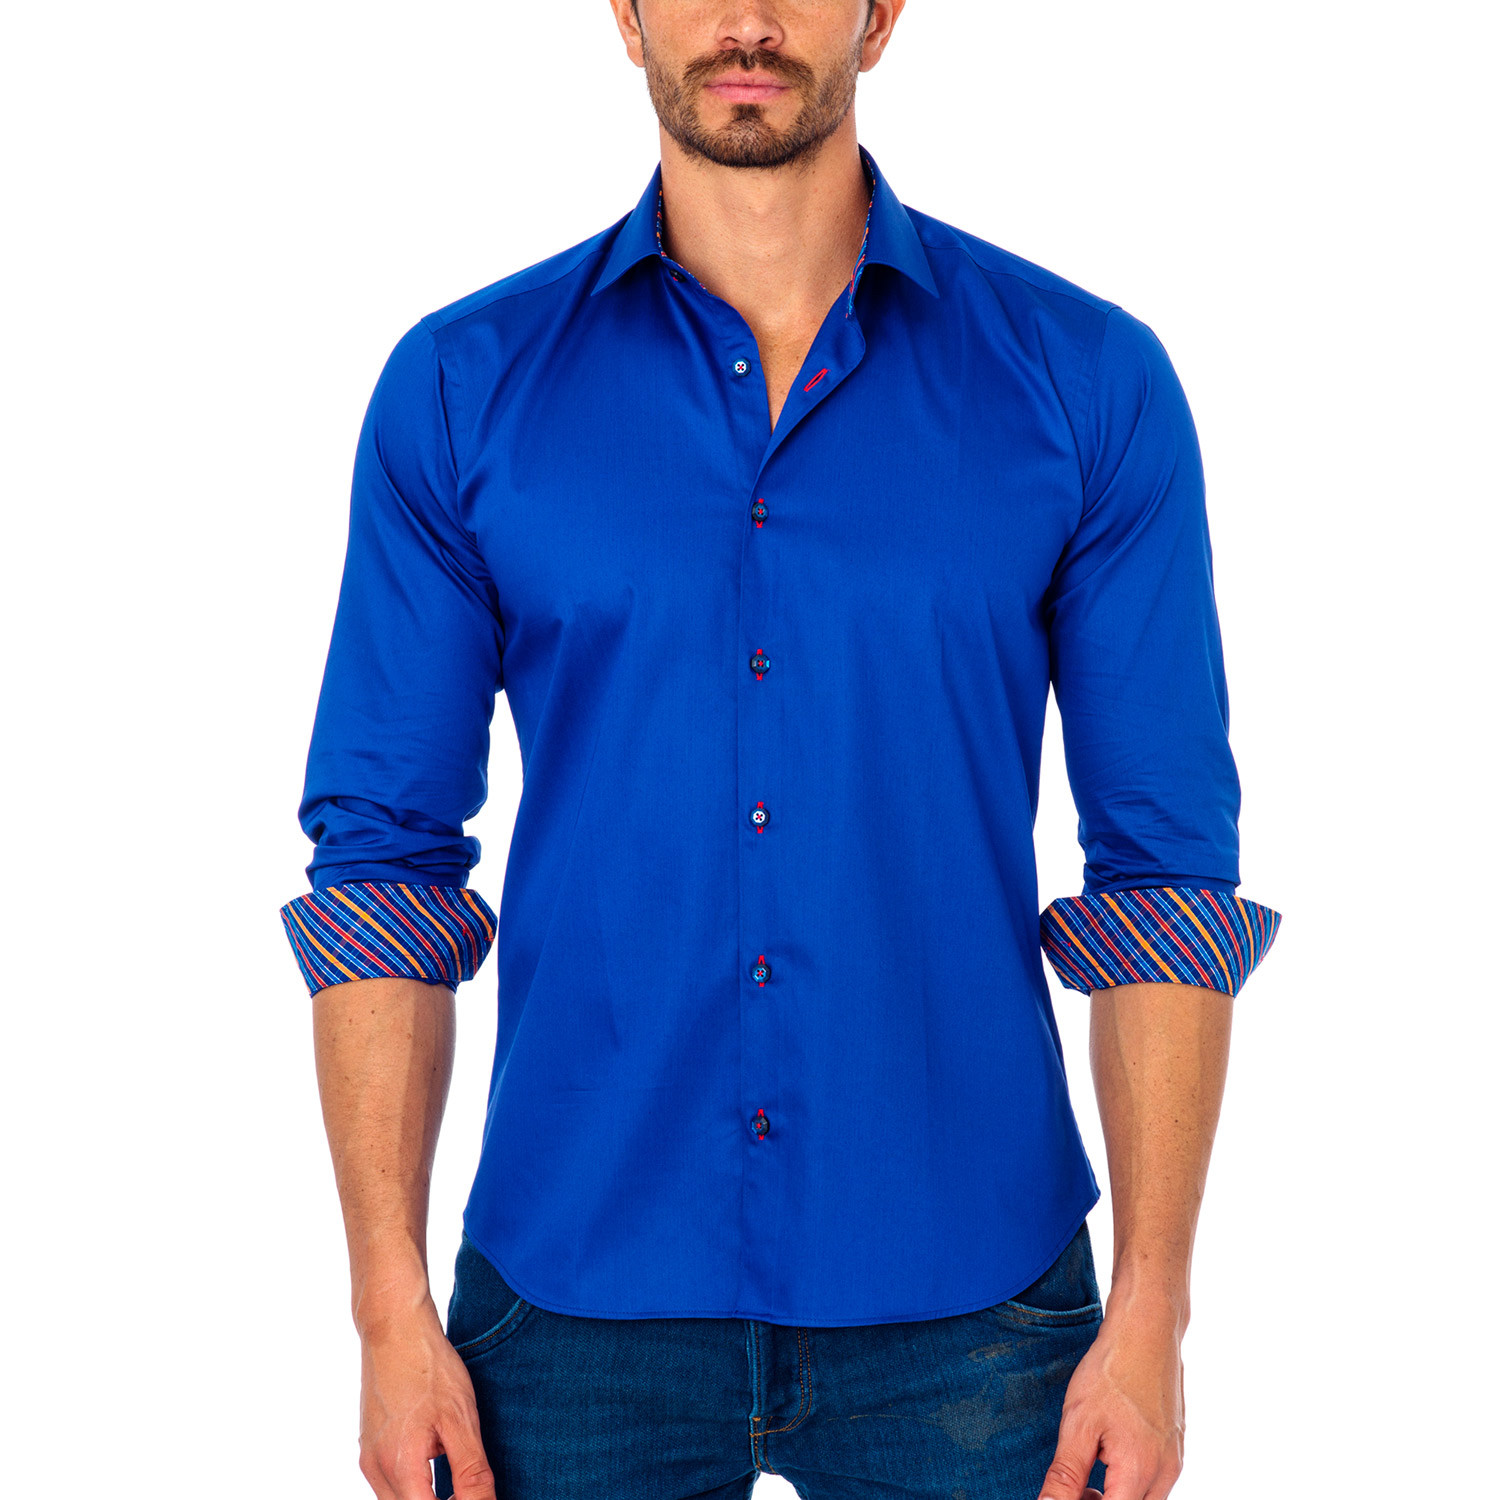 Office stripe placket button up shirt royal blue s for Blue button up work shirt